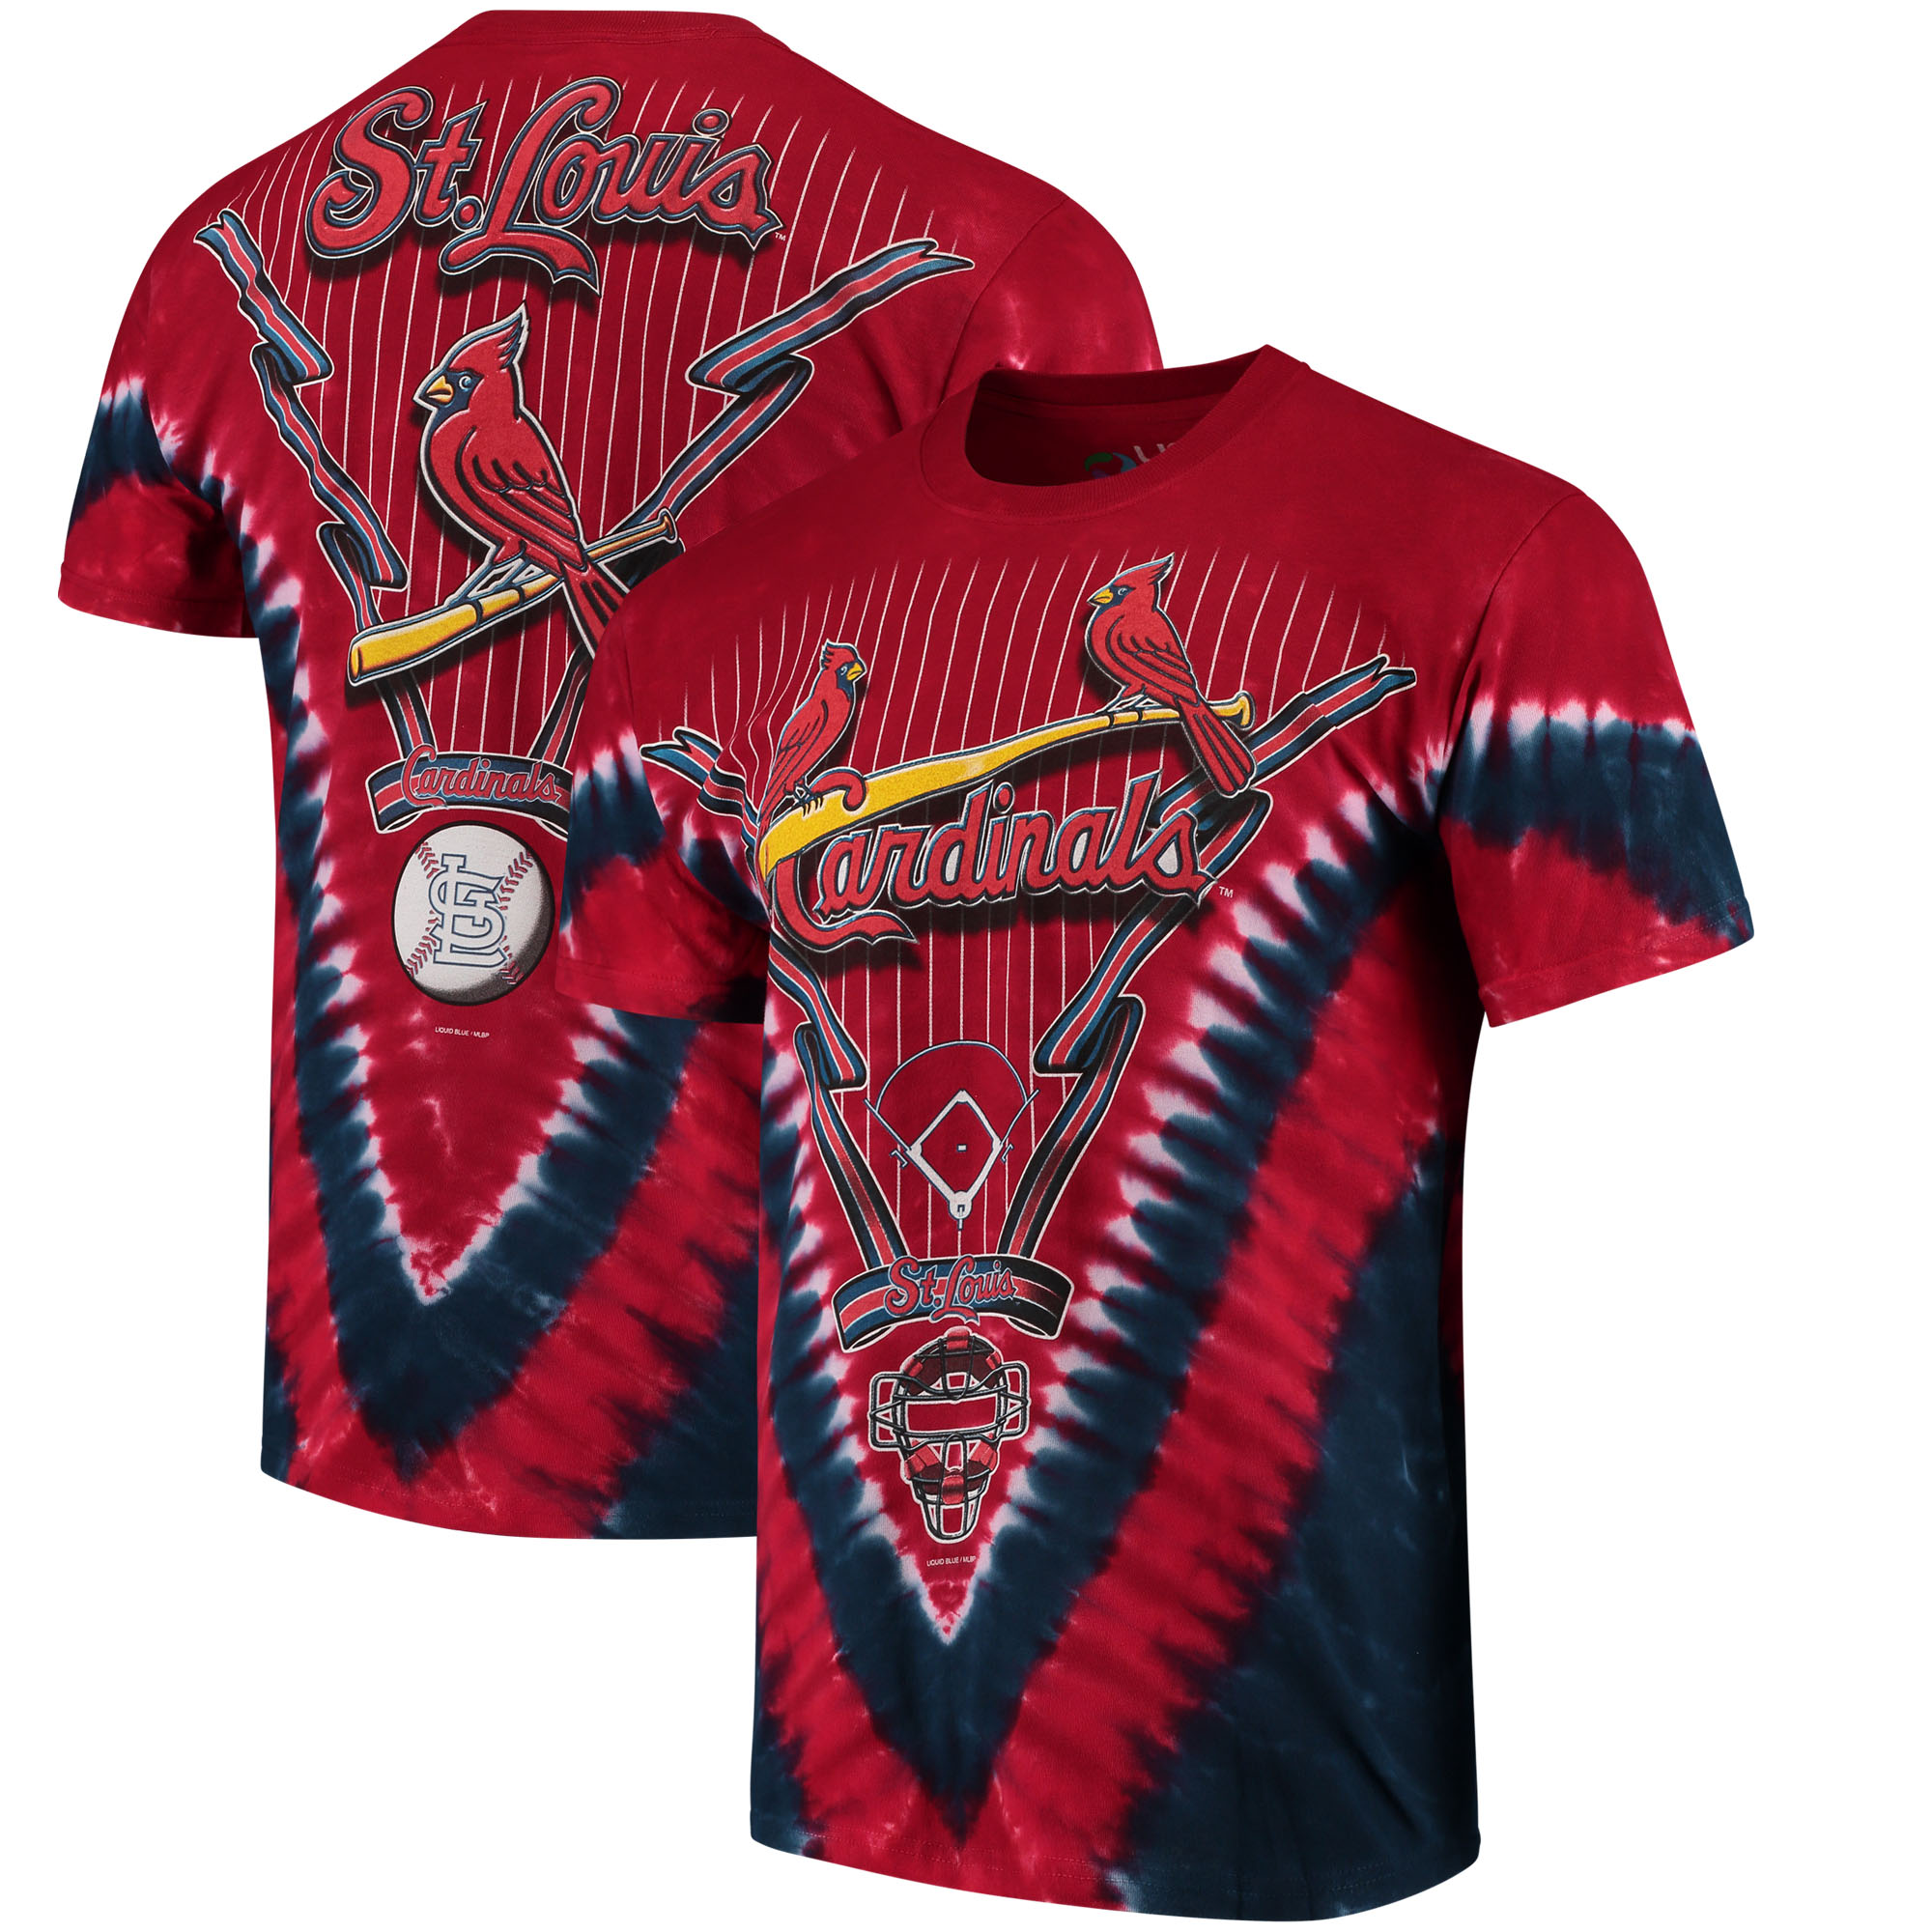 St. Louis Cardinals Tie-Dye T-Shirt - Red